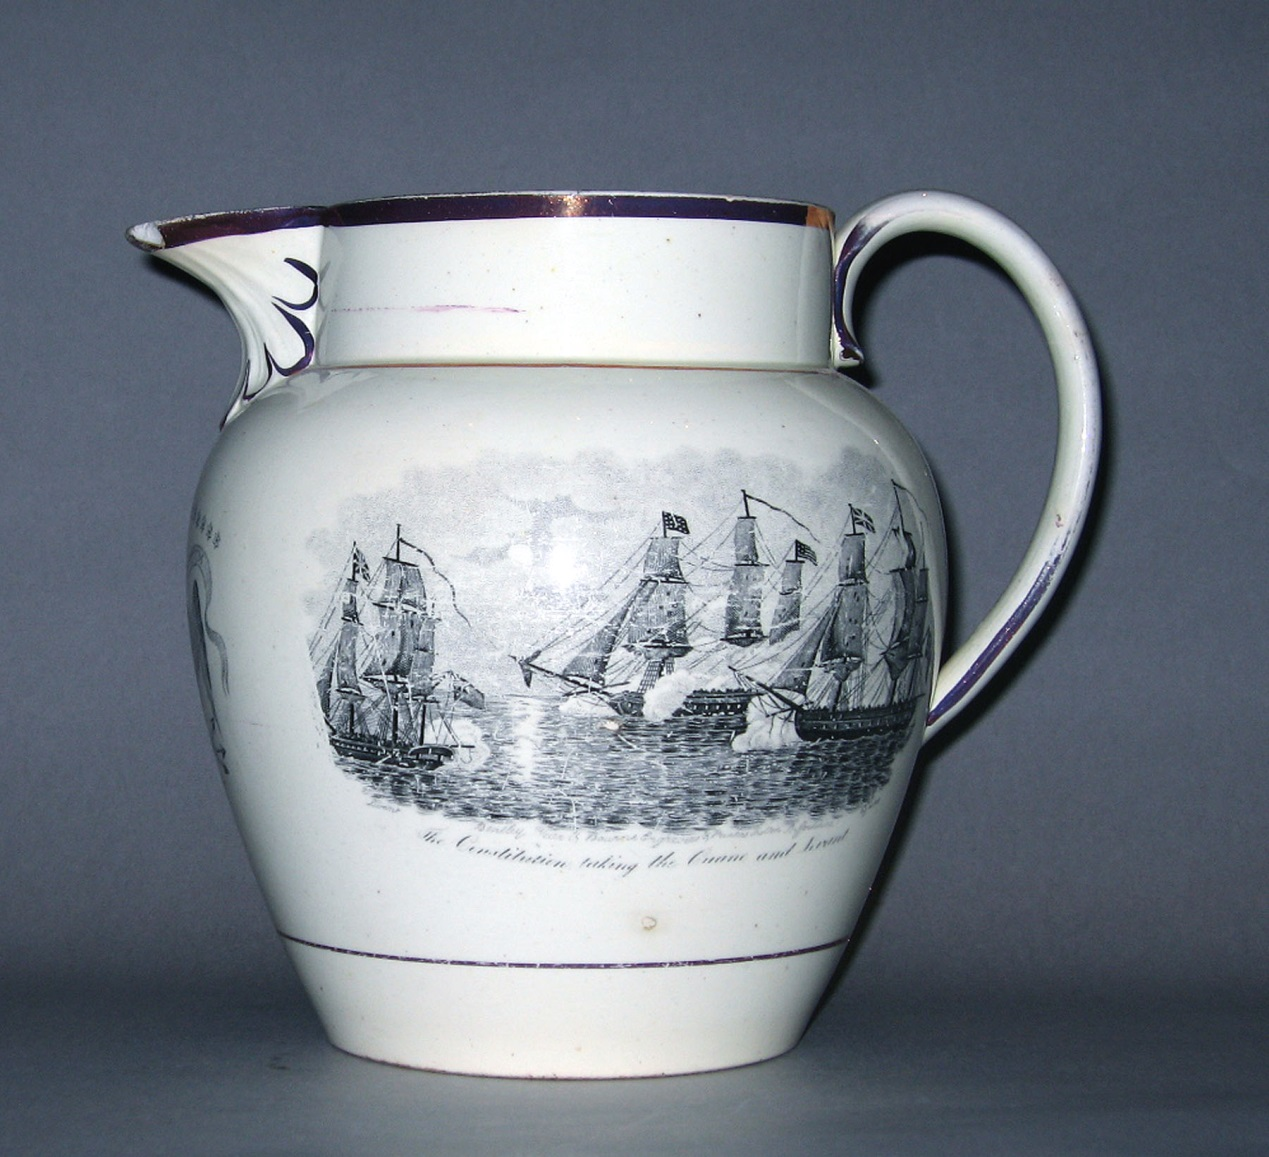 "The print used for this depiction of ""The Constitution taking the Cyane and Levant"" is signed ""Bentley Wear & Boune Engravers & Printers Shelton Staffordshire."" Jug, England, 1816–30. Earthenware (tin-glazed) or lead-glazed earthenware Bequest of Mr. B. Thatcher Feustman 1968.84."